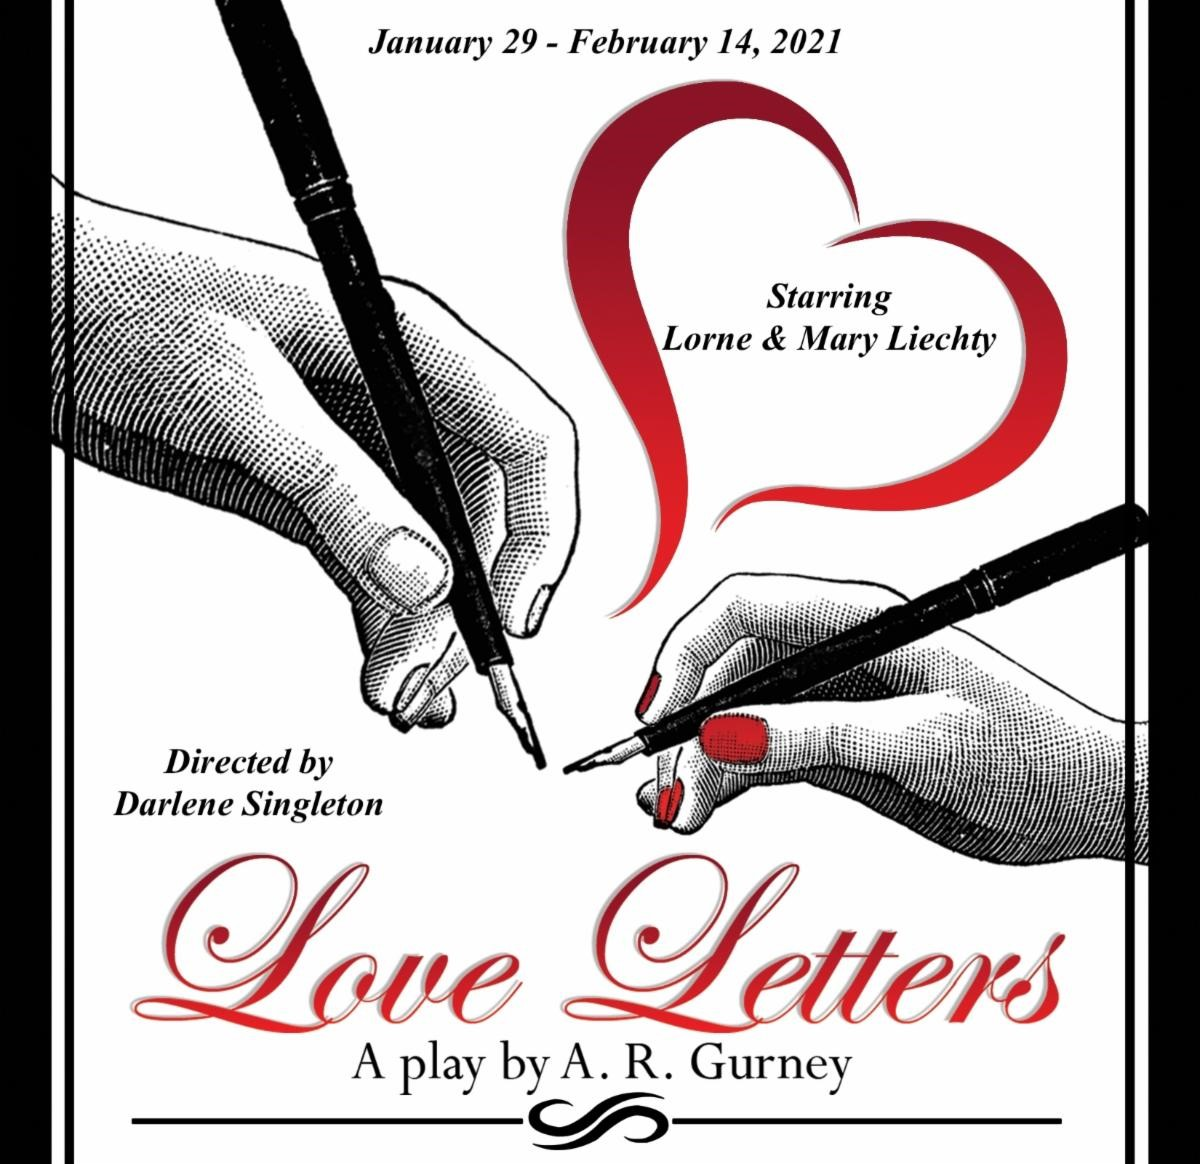 'Love Letters' opens at Rockwall Community Playhouse Jan. 29